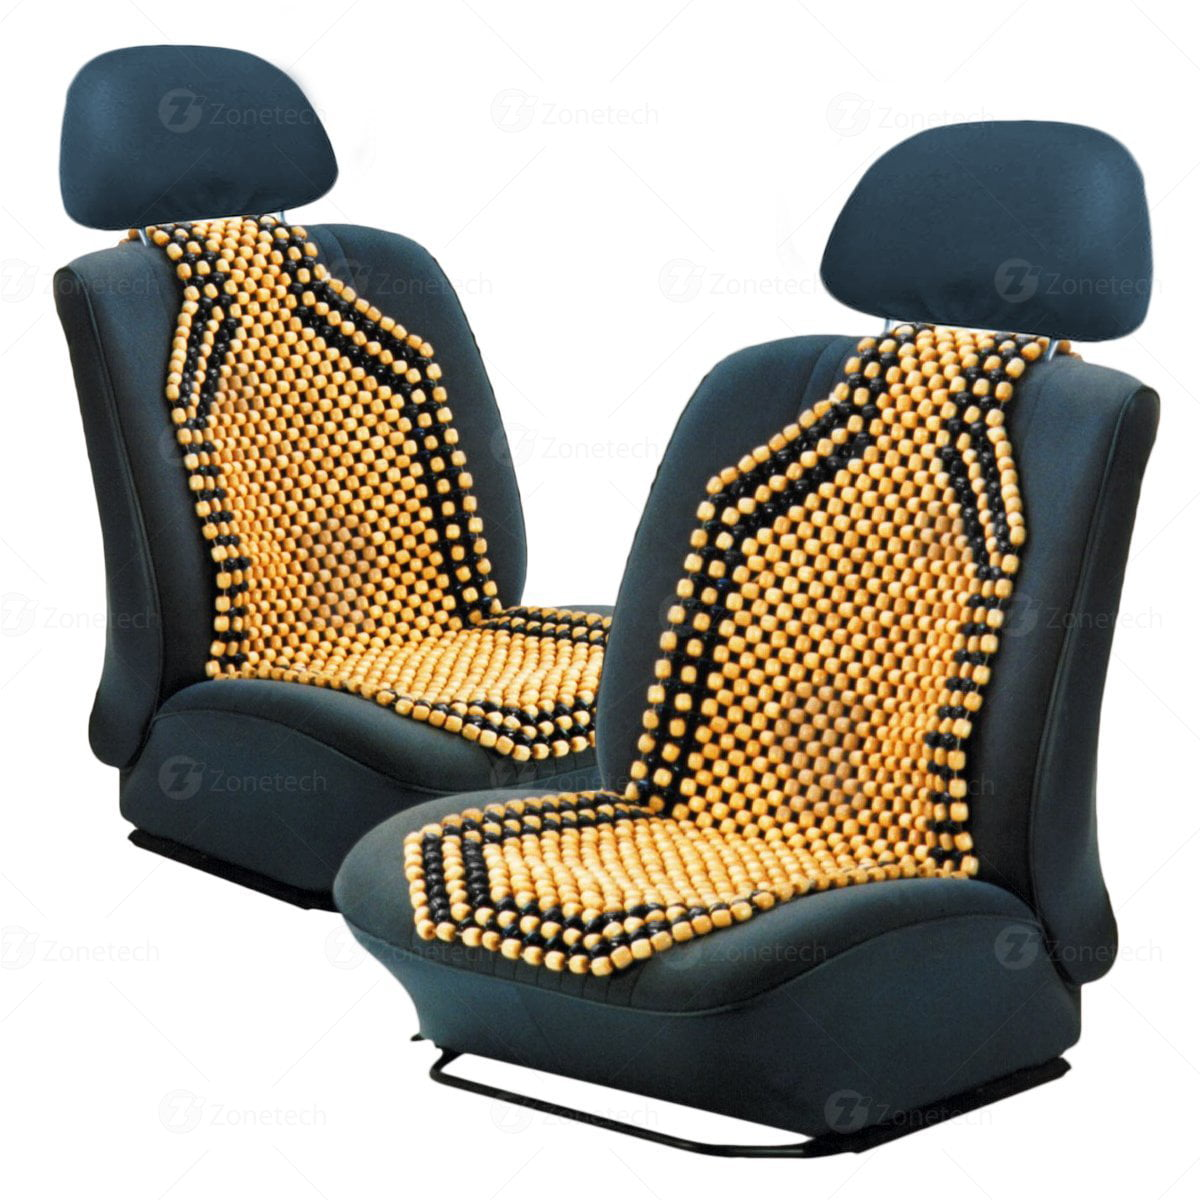 Reduces Fatigue the Car or Truck or your office Chair Zone Tech Natural Royal Wood Bead Seat Cover Massage Cool Premium Comfort Cushion